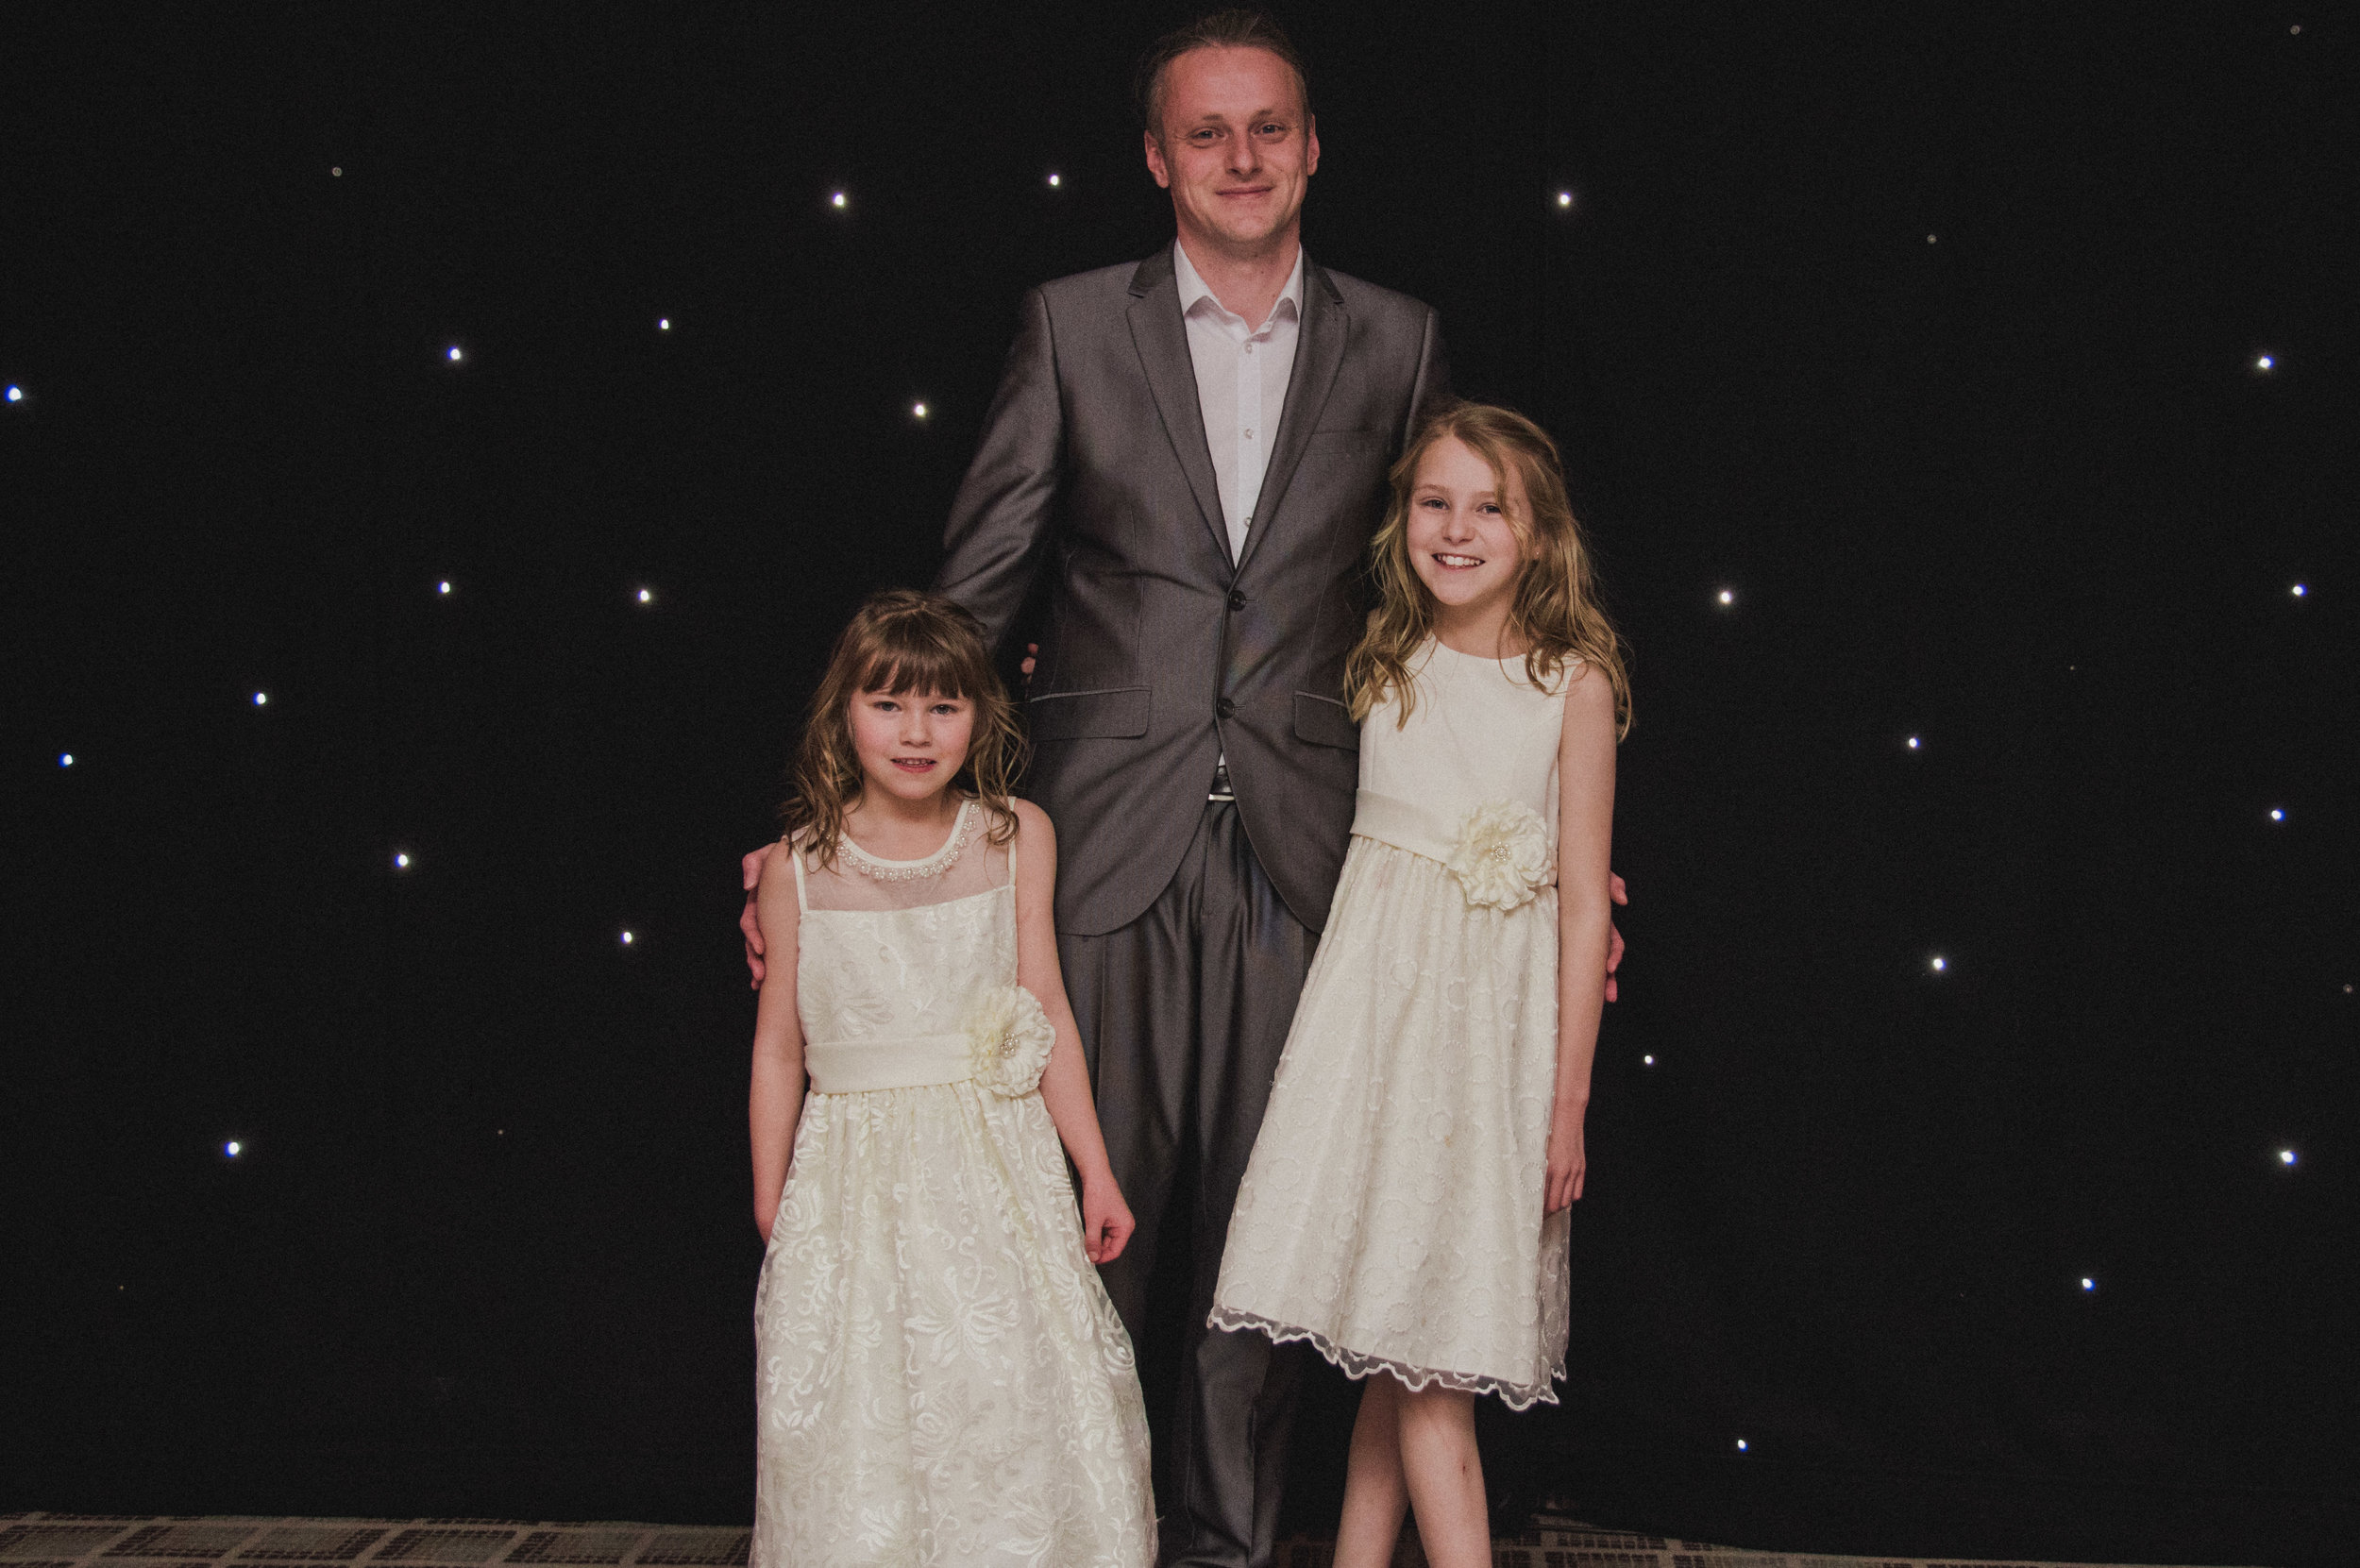 Lancashire wedding photographer London wedding photographer wedding photographer newcastle wedding photographer salford wedding photographer award winning wedding photographer (1 of 1).jpg